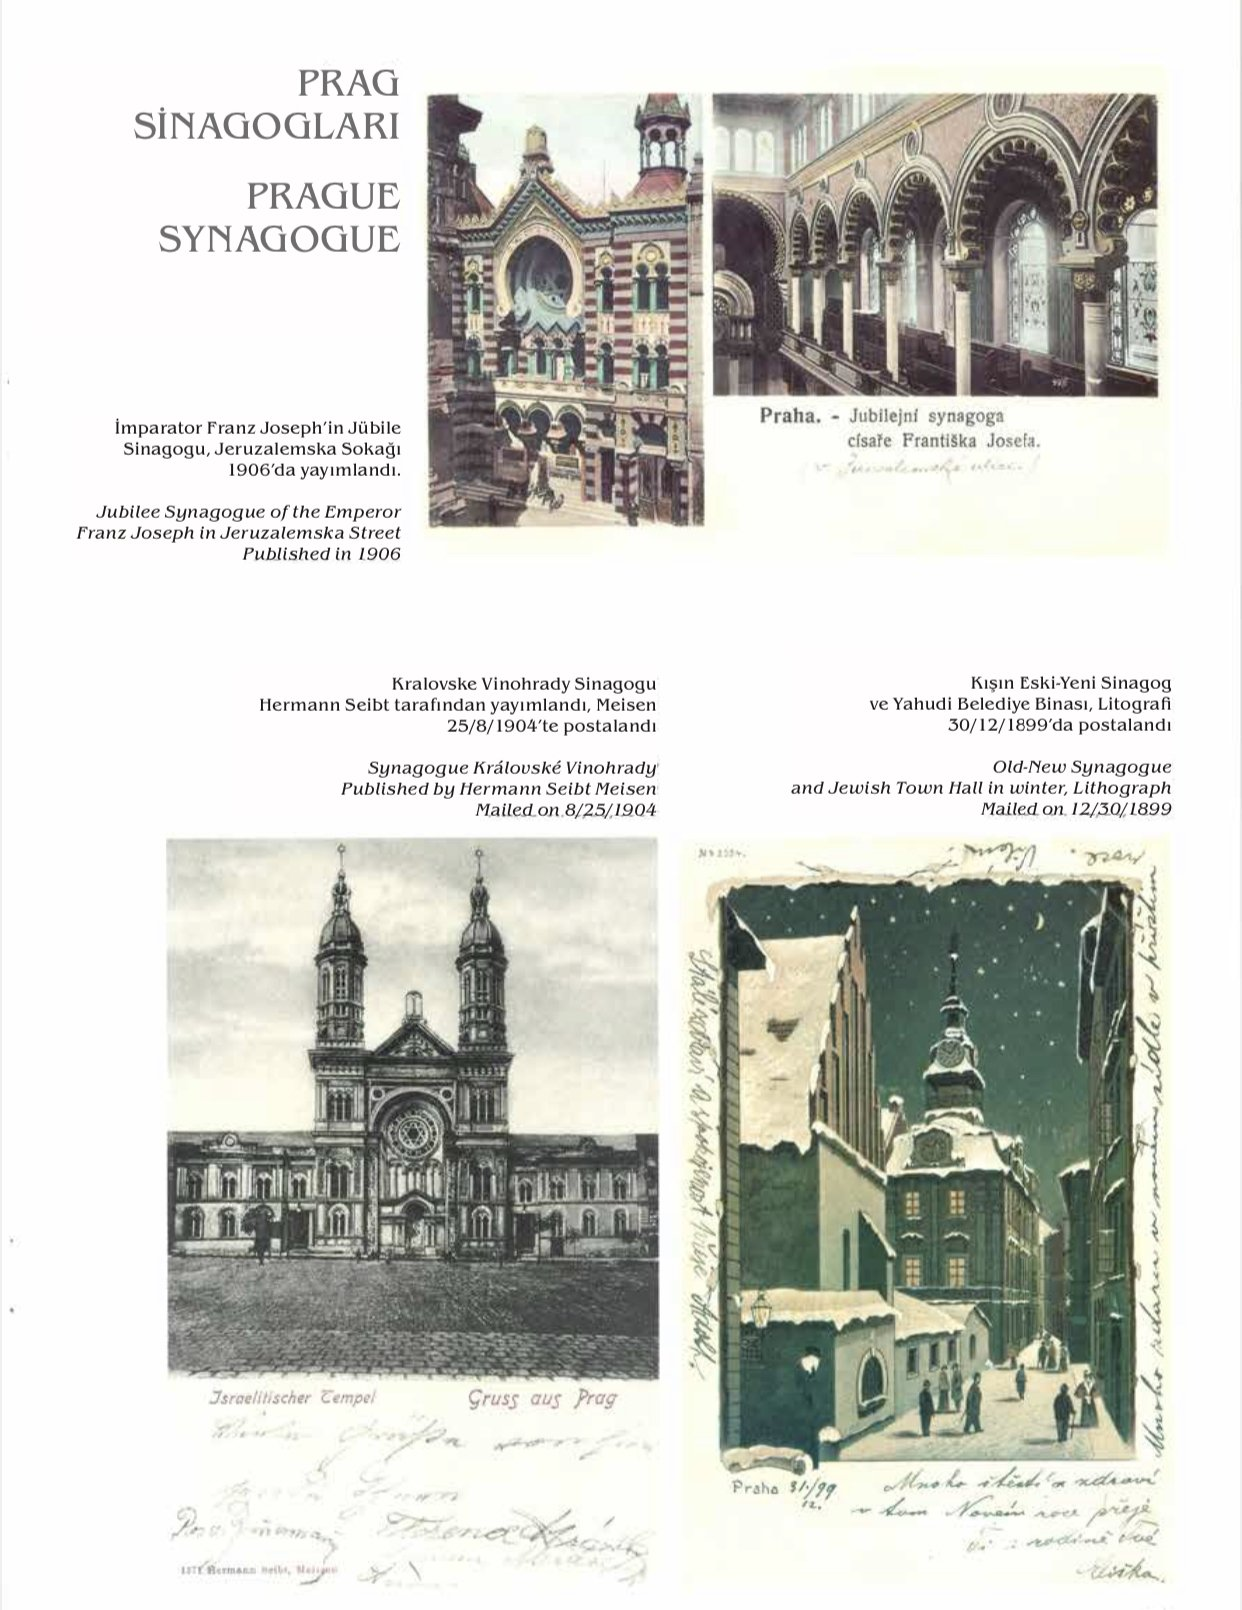 Jewish postcards featuring Prague synagogues from